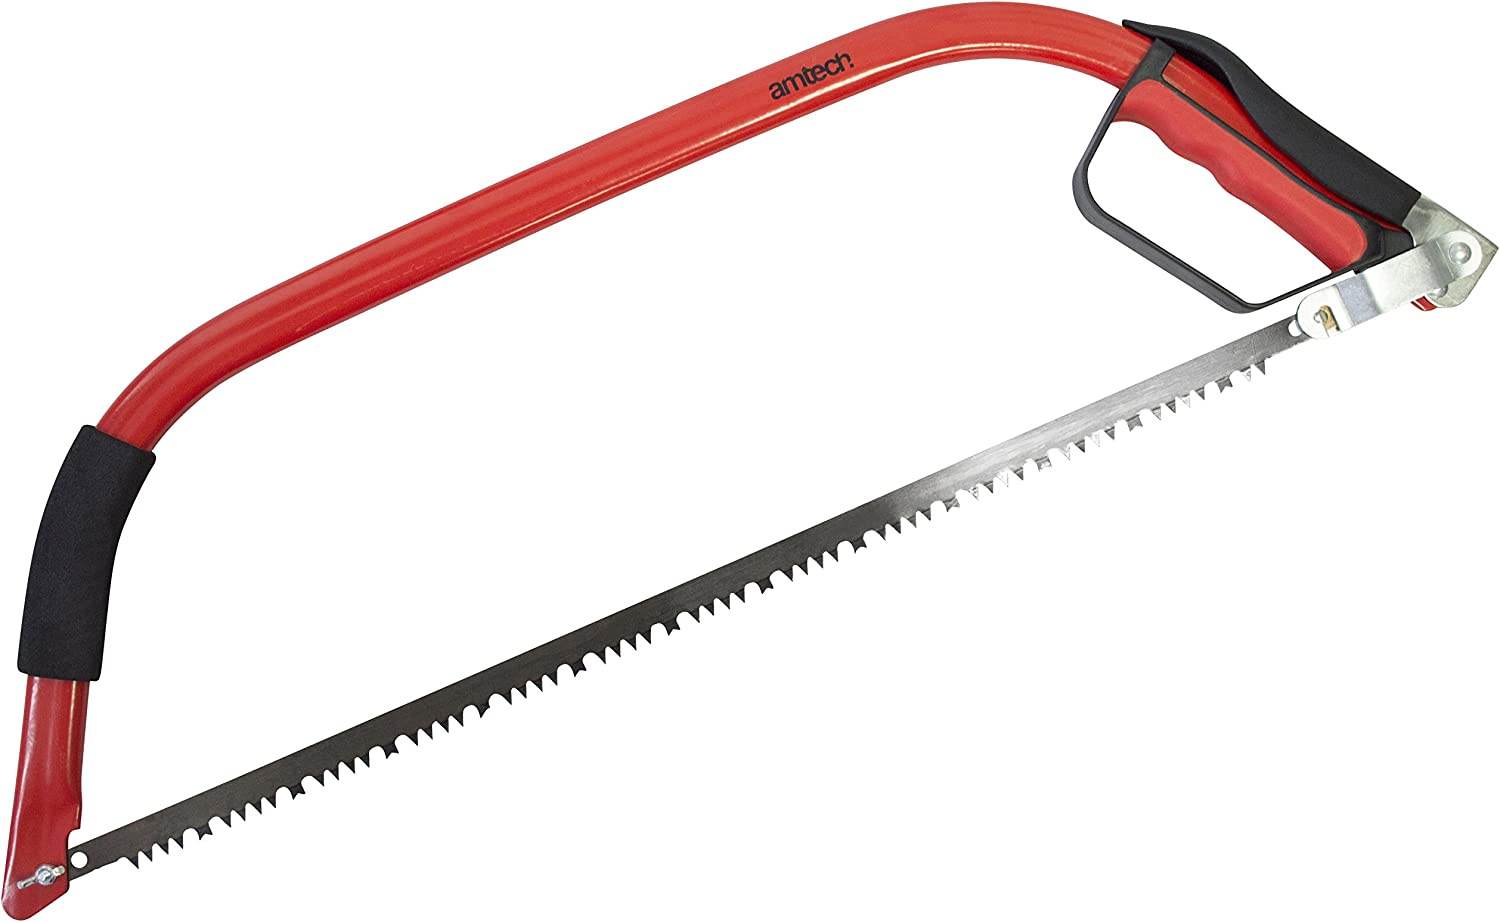 One Size Amtech M2615 24 Heavy Duty Bow Saw Black-Silver-Red